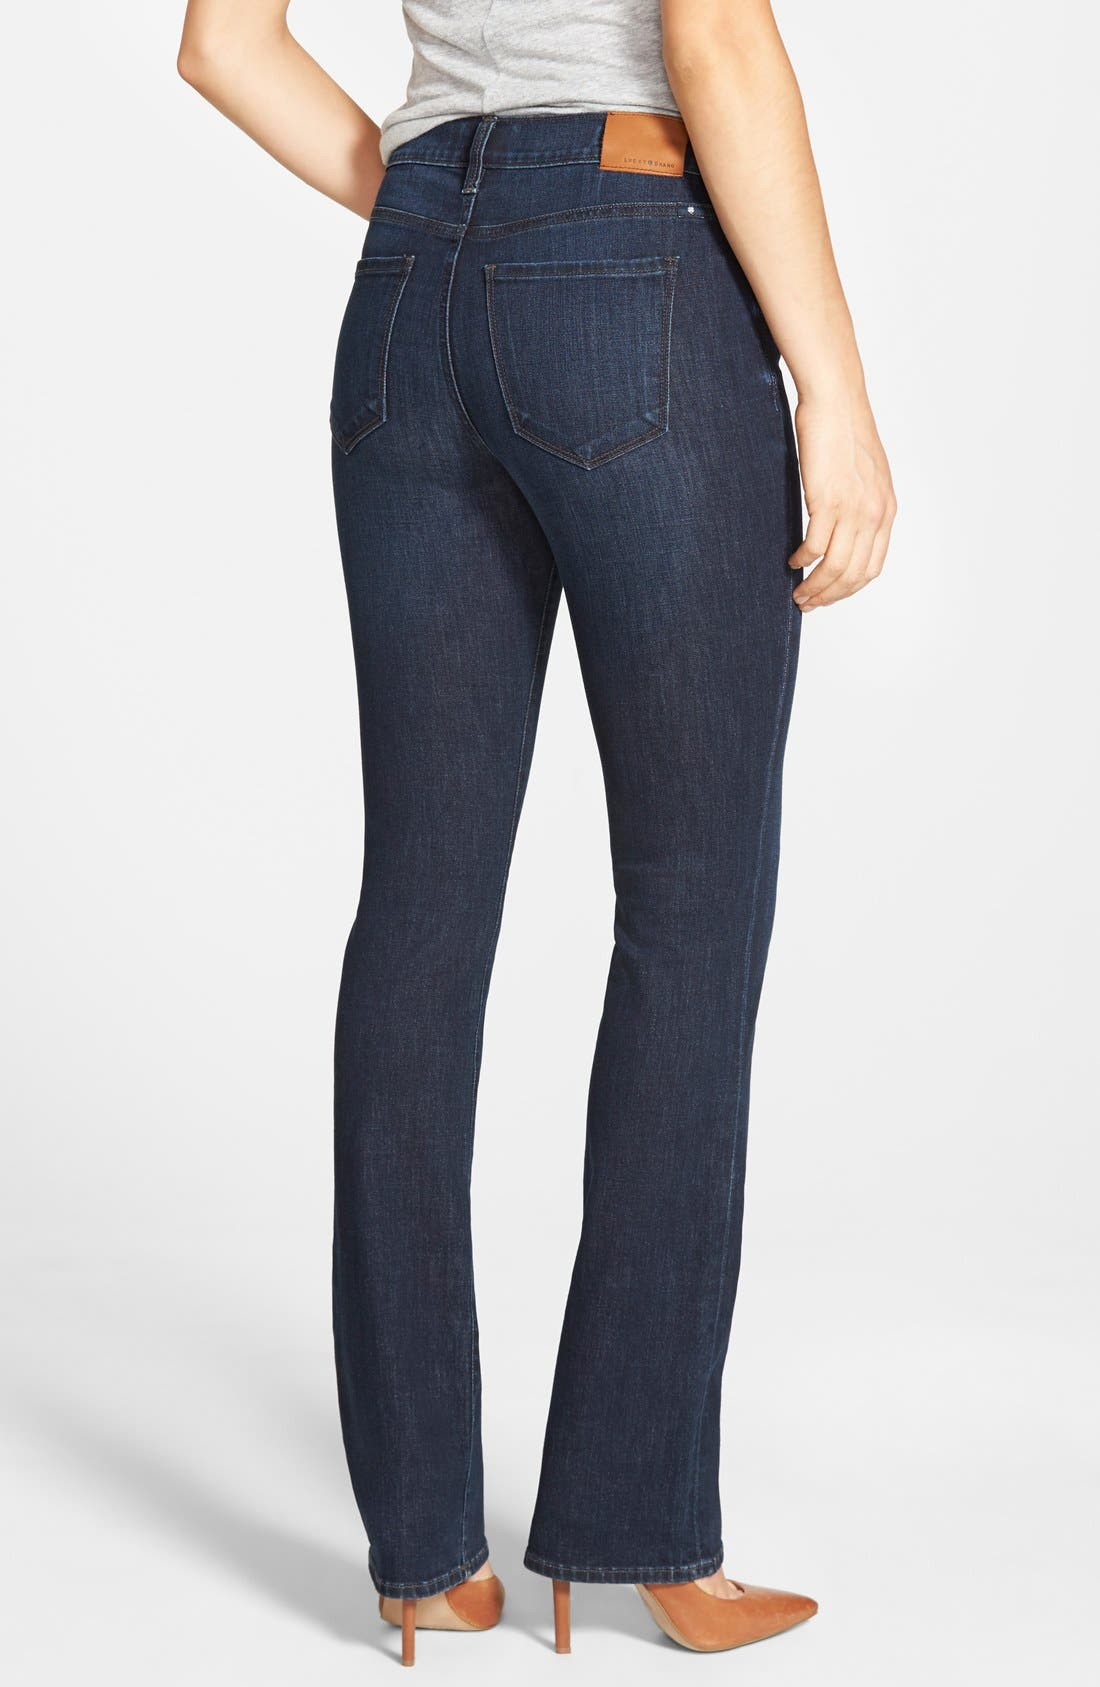 'Brooke' Stretch Bootcut Jeans,                             Alternate thumbnail 5, color,                             421